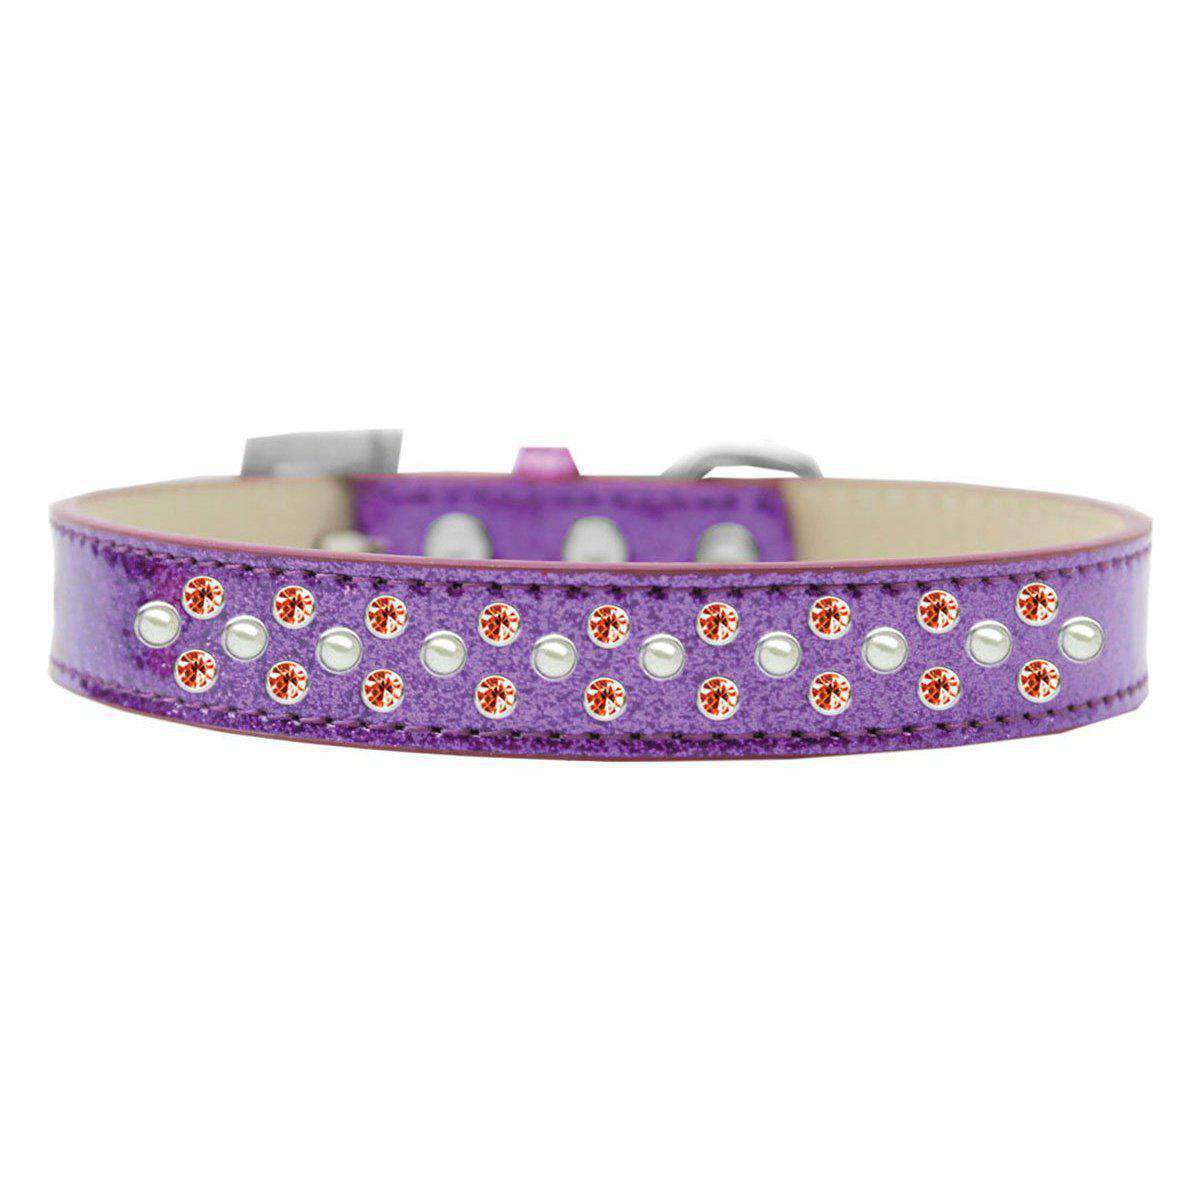 Mirage Pet Products Sprinkles Ice Cream Dog Collar Pearl And Orange Crystals Size 16 - Purple-Mirage Pet Products-DirtyFurClothing